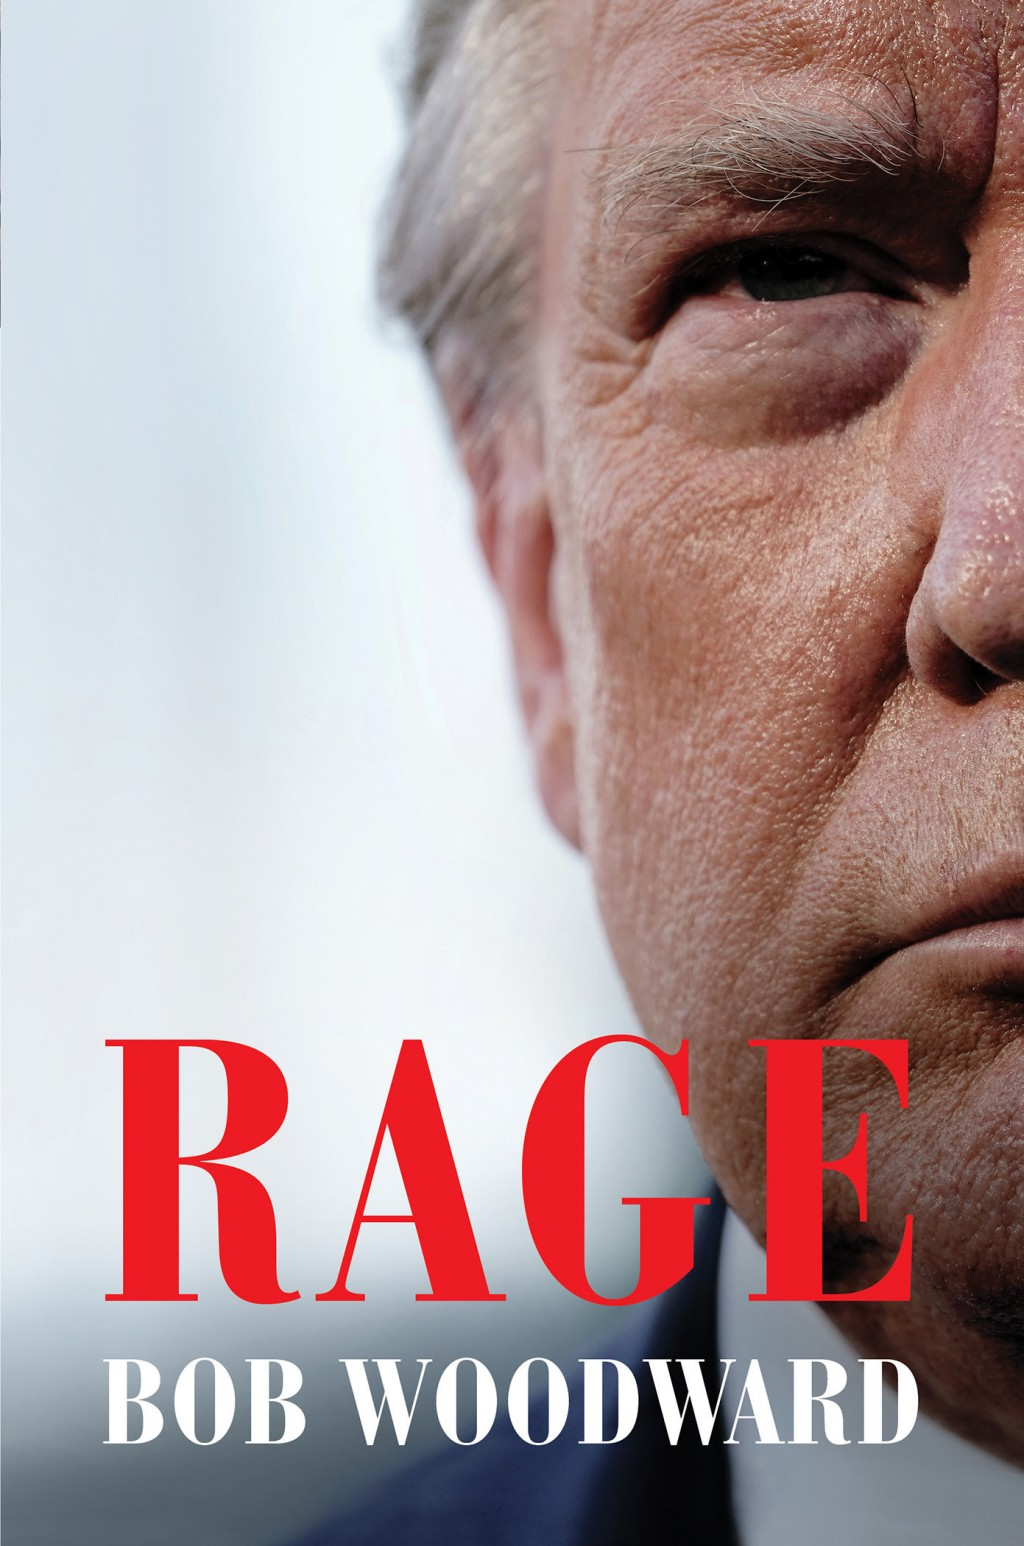 """This cover image released by Simon & Schuster shows """"Rage"""" by Bob Woodward. Ahead of the November elections, readers turned to such best sellers about..."""